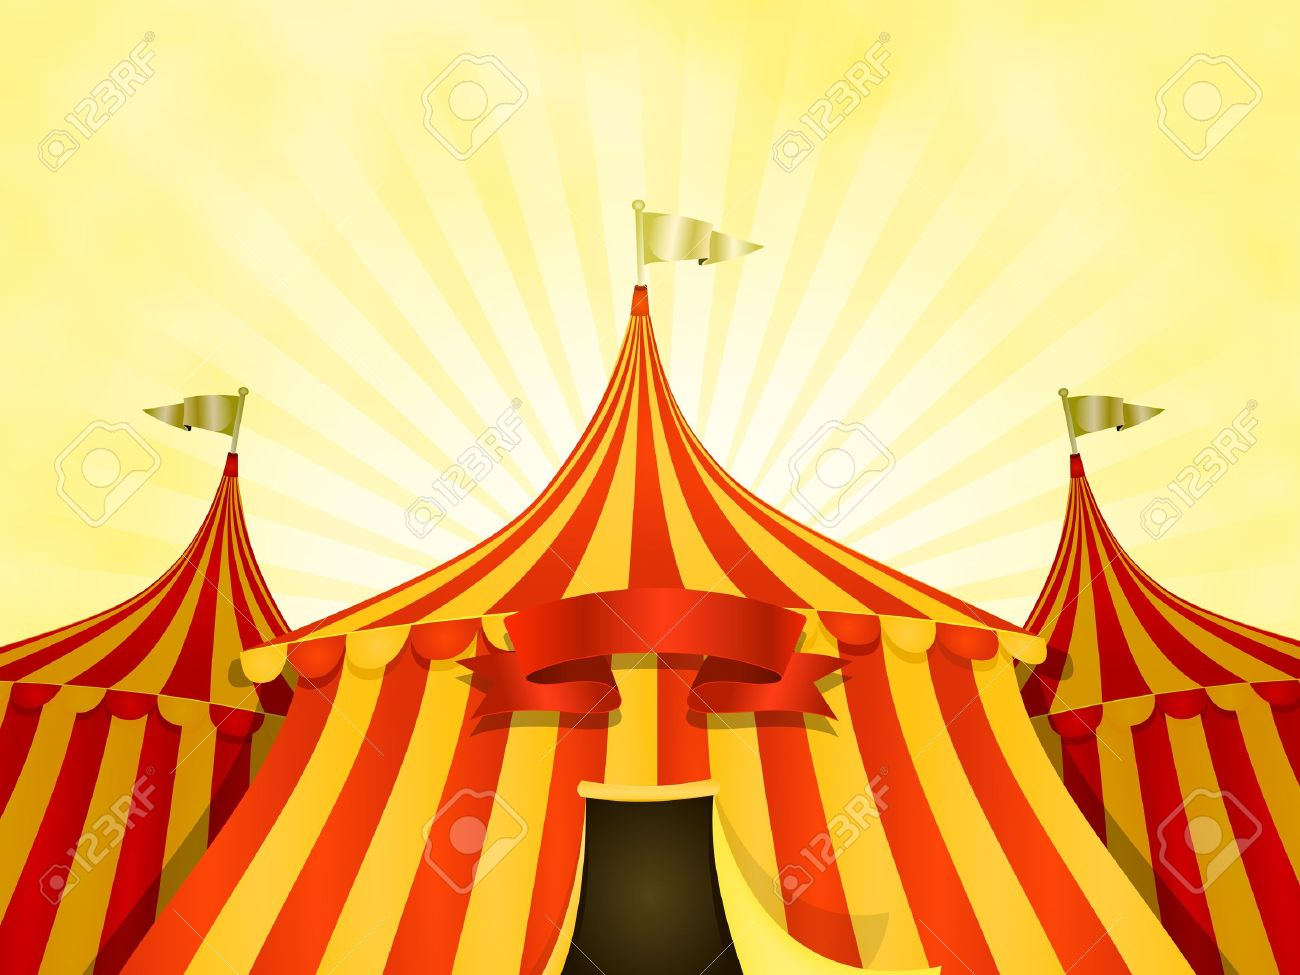 6 830 circus tent stock vector illustration and royalty free